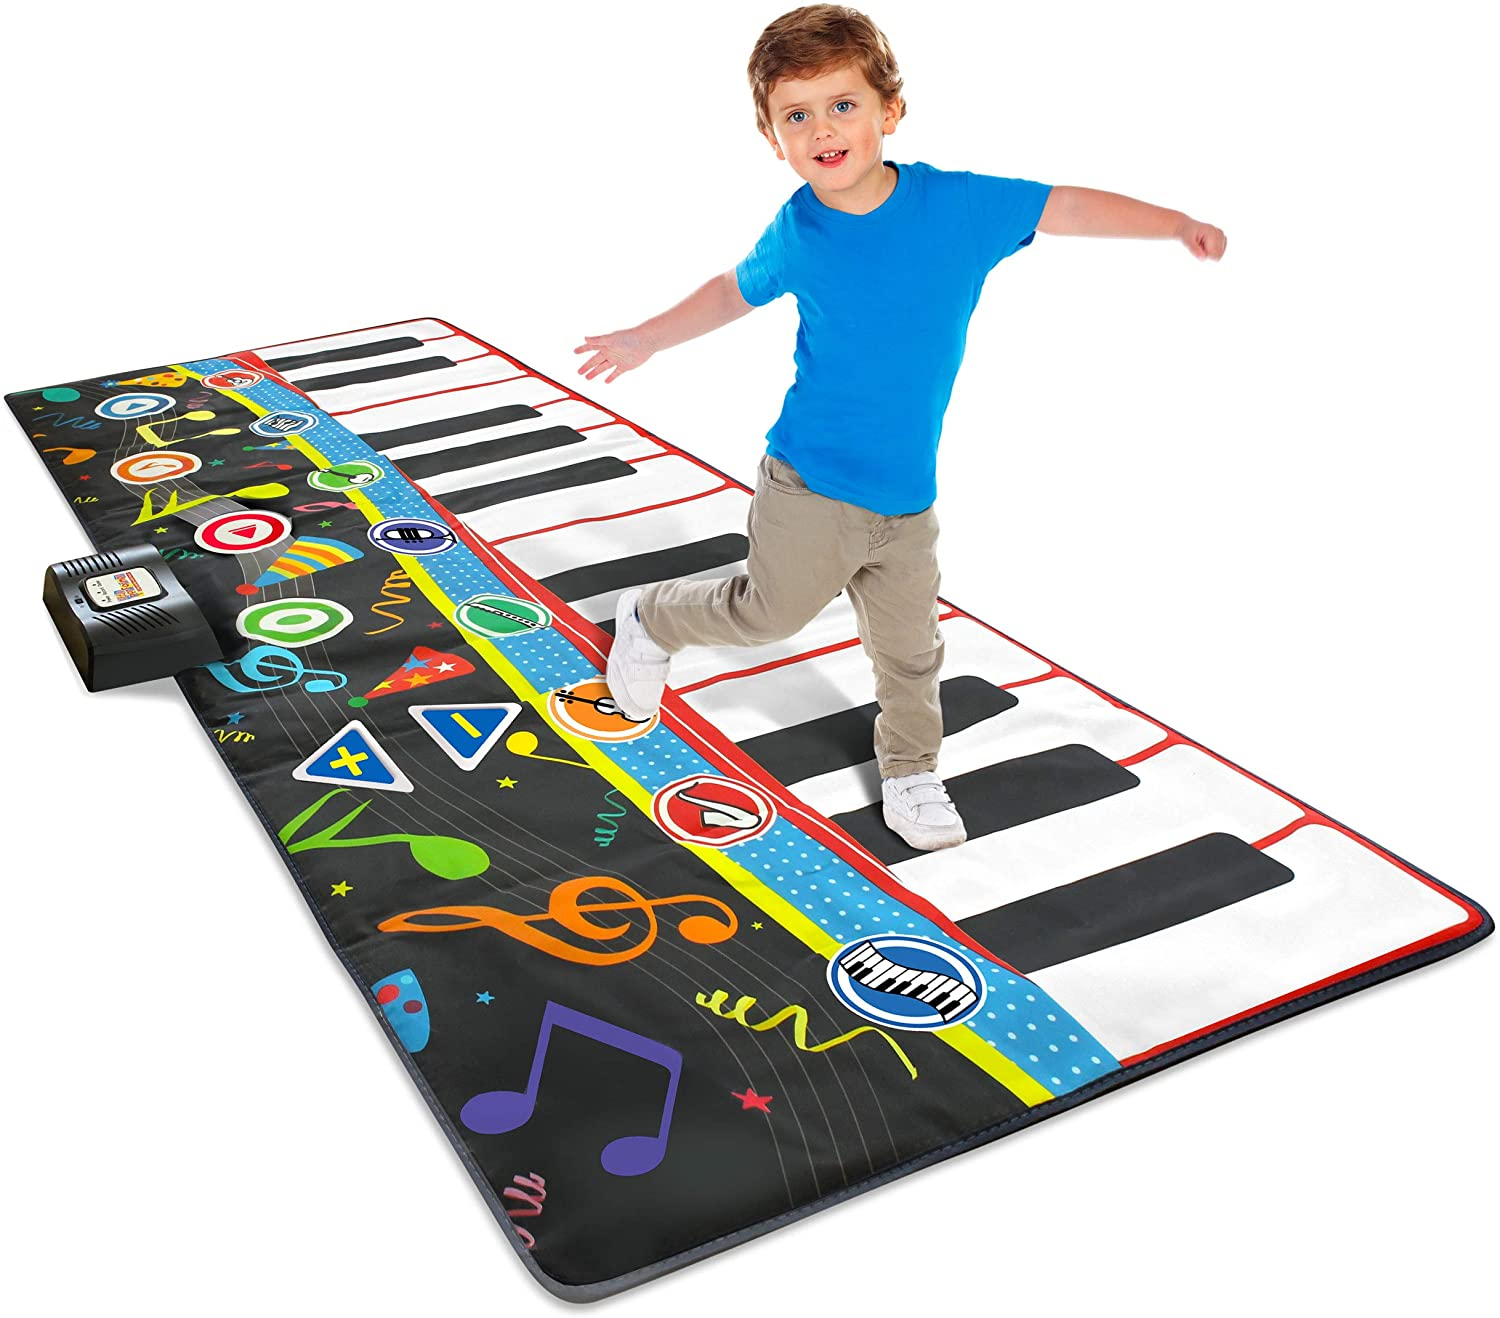 """Jumbo Piano Mat 70/"""" Inches Wide! 8 Instrument Sounds 4 Play Modes Little Performer Giant Floor Piano Mat for Kids Floor Piano for Kids and Toddlers Ages 3 +"""